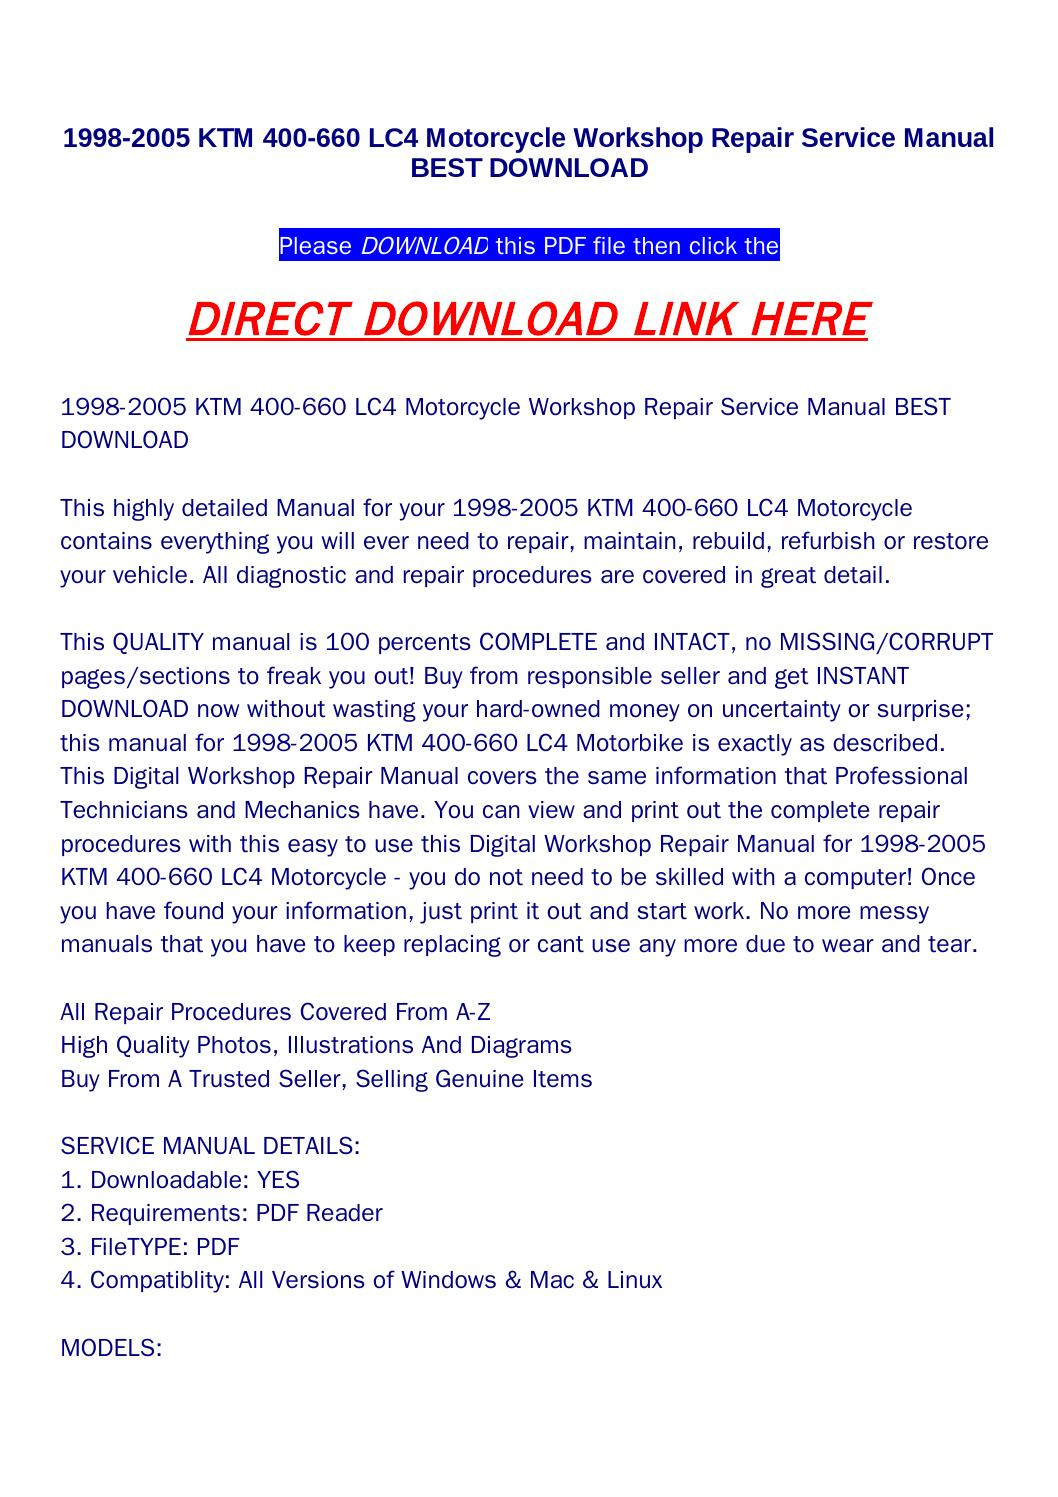 1998 2005 ktm 400 660 lc4 motorcycle workshop repair service manual best  download by returnqqv - issuu